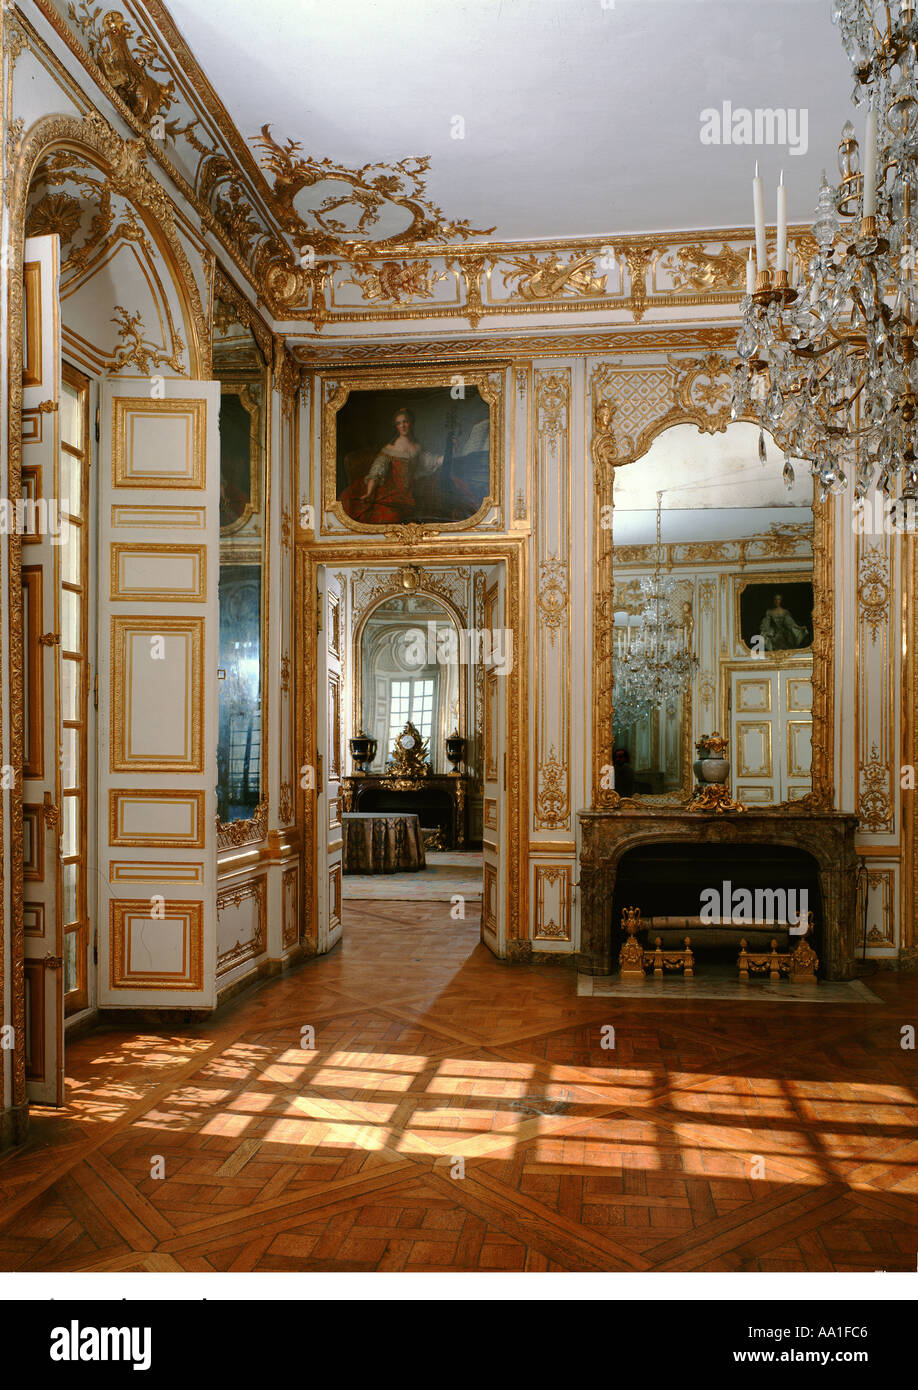 Palace of versailles chambre de louis xv stock photo for Chambre louis xvi versailles